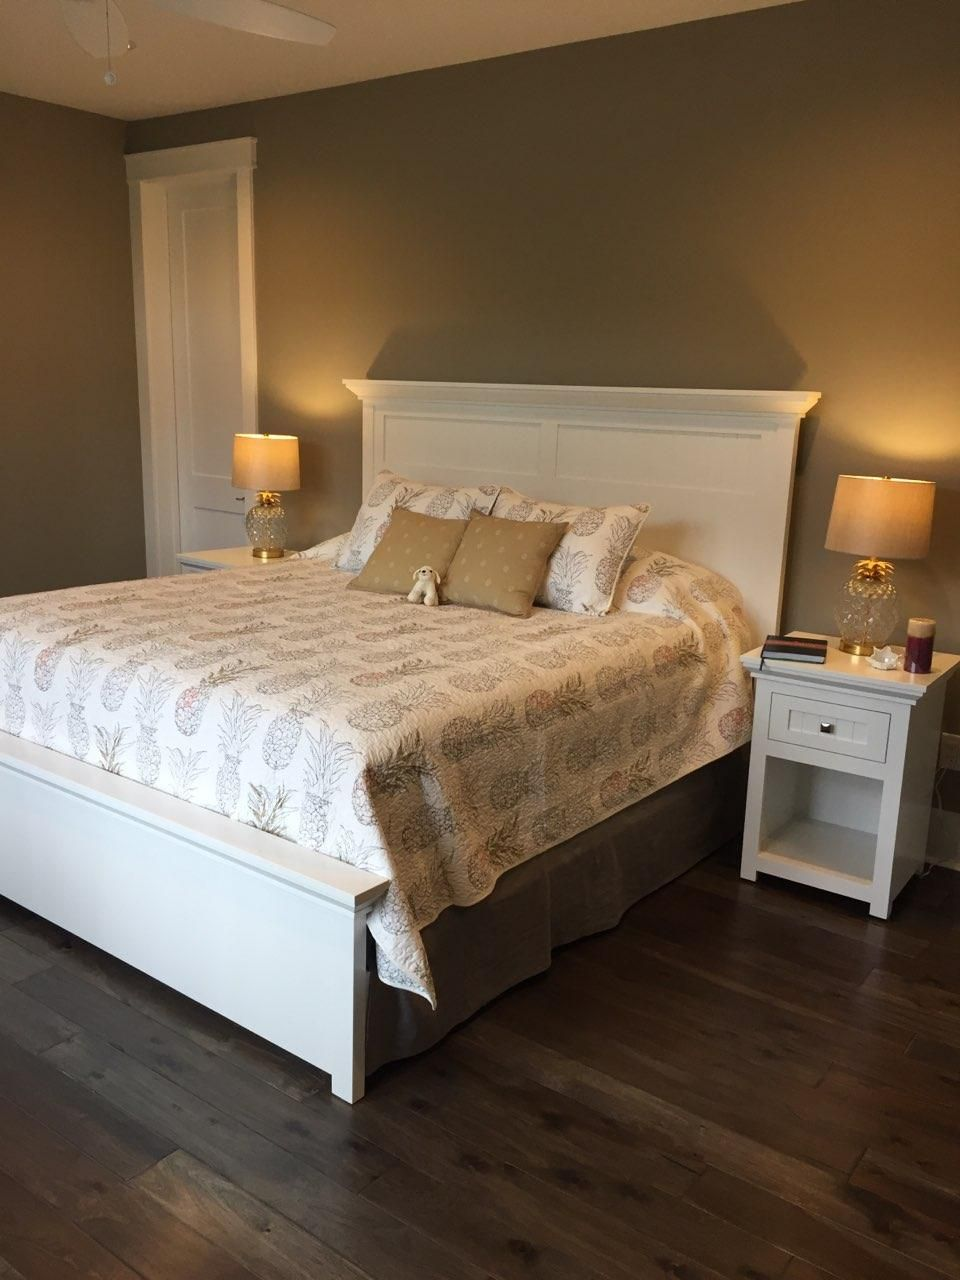 A new bedroom suite, custom made with a white painted